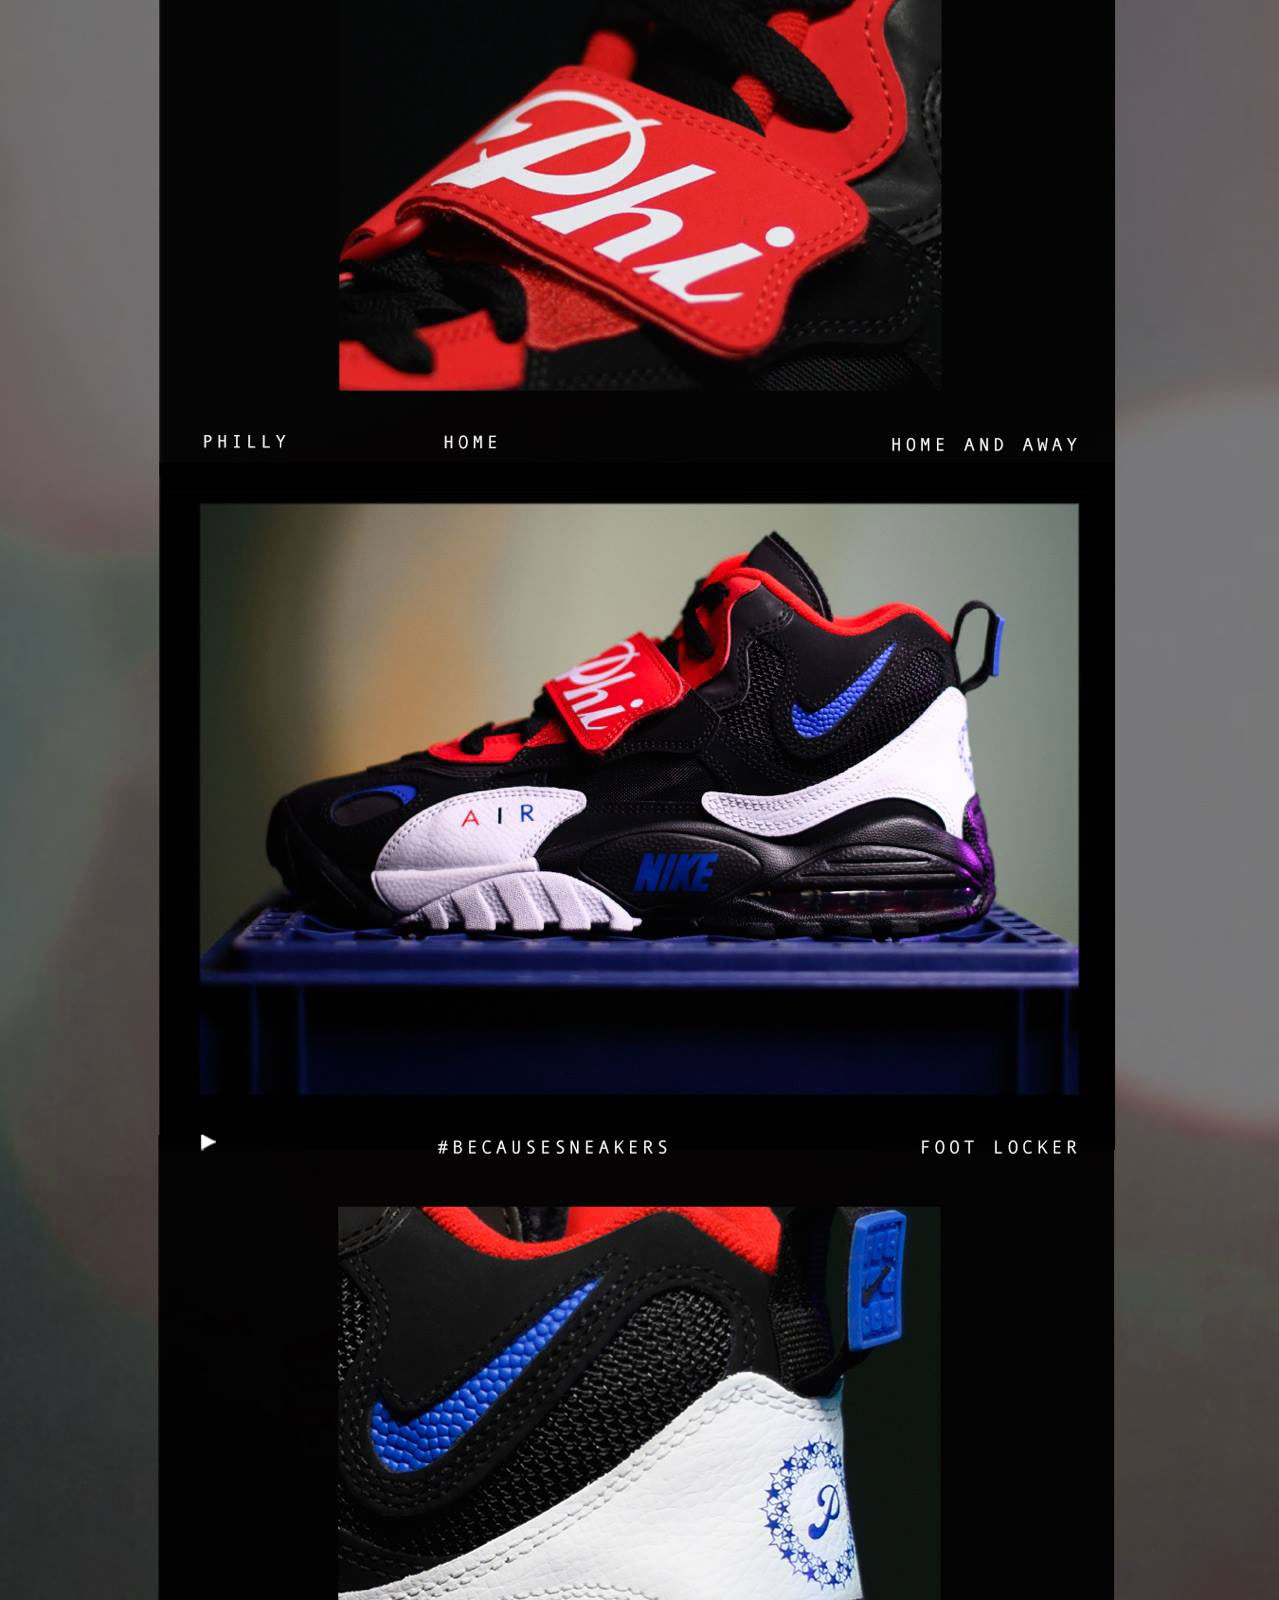 nike-air-max-speed-turf-philadelphia-home